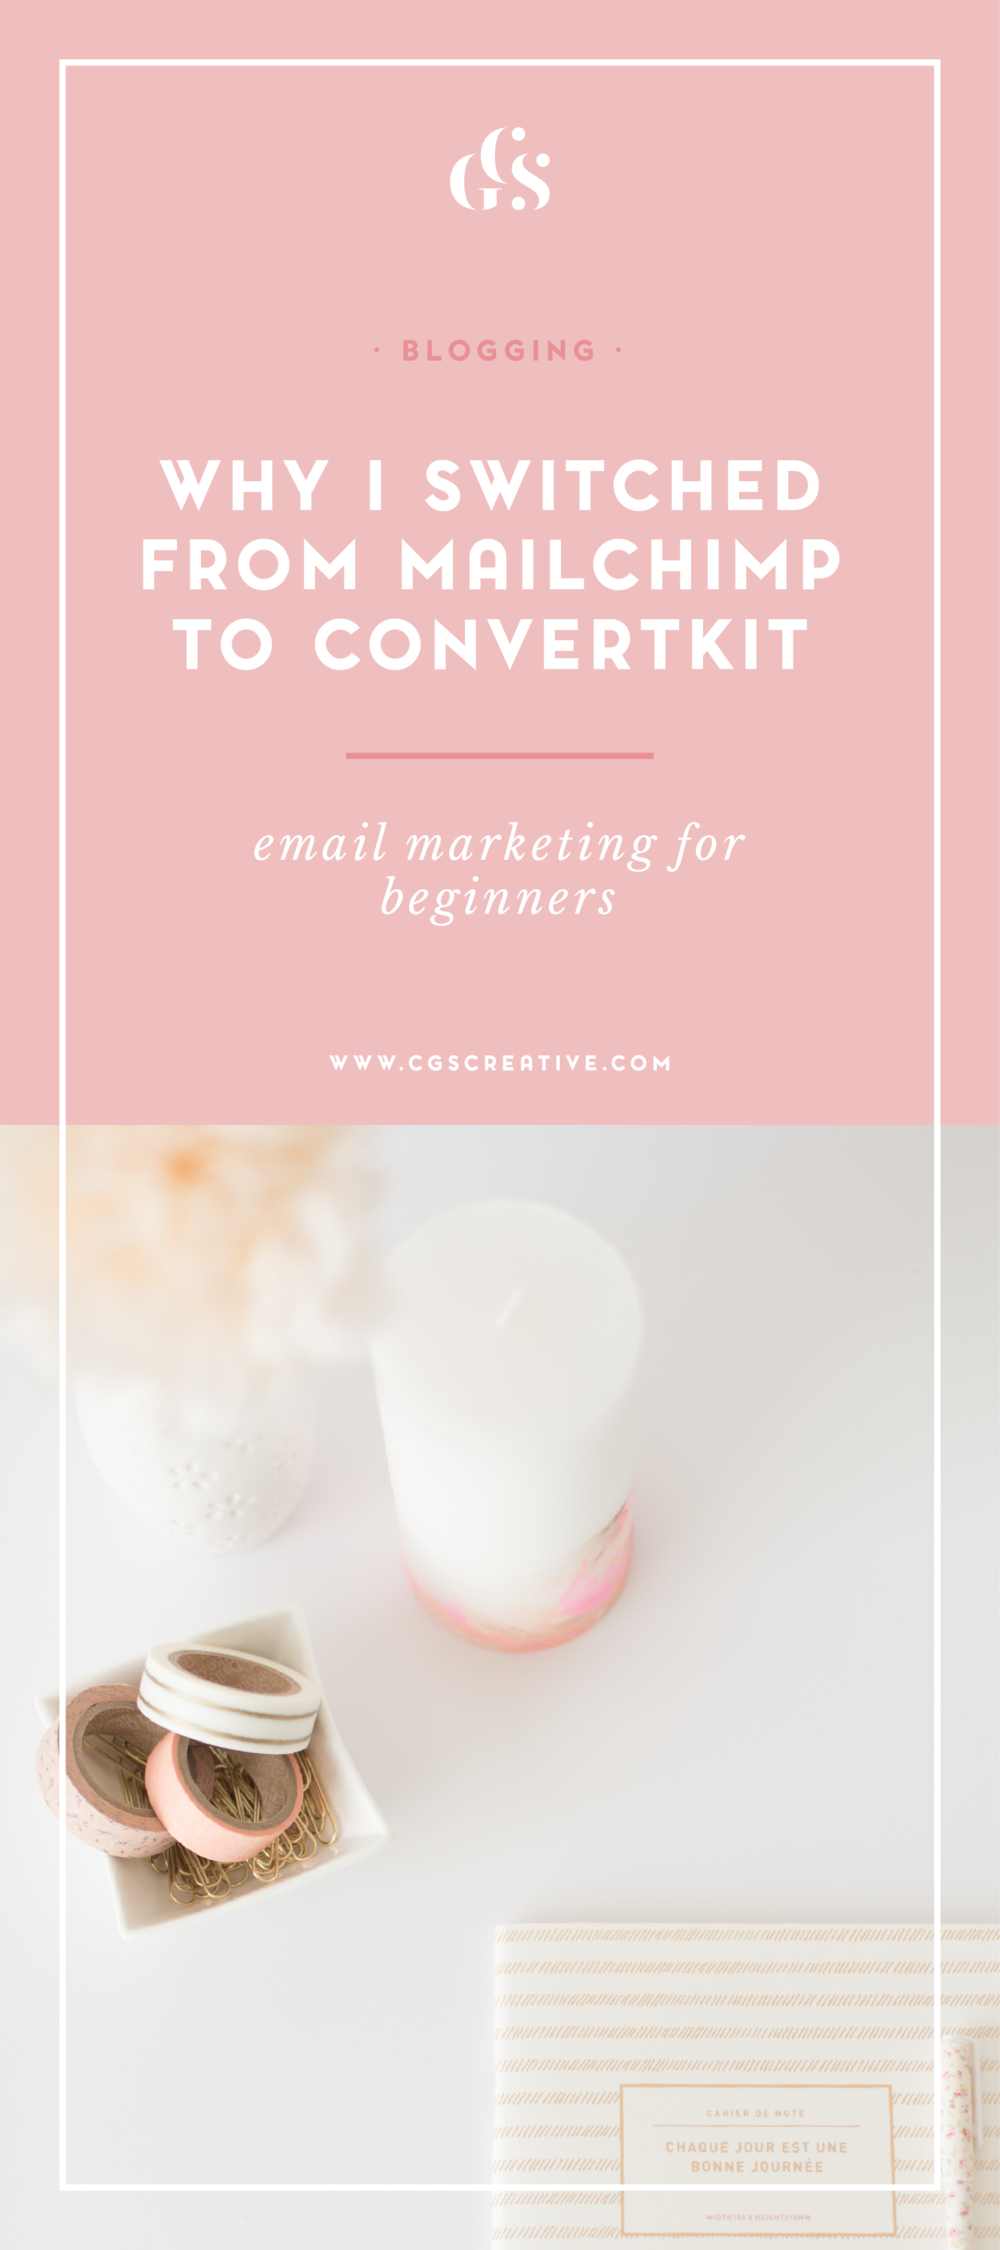 Why moved from mailchimp to convertkit blog